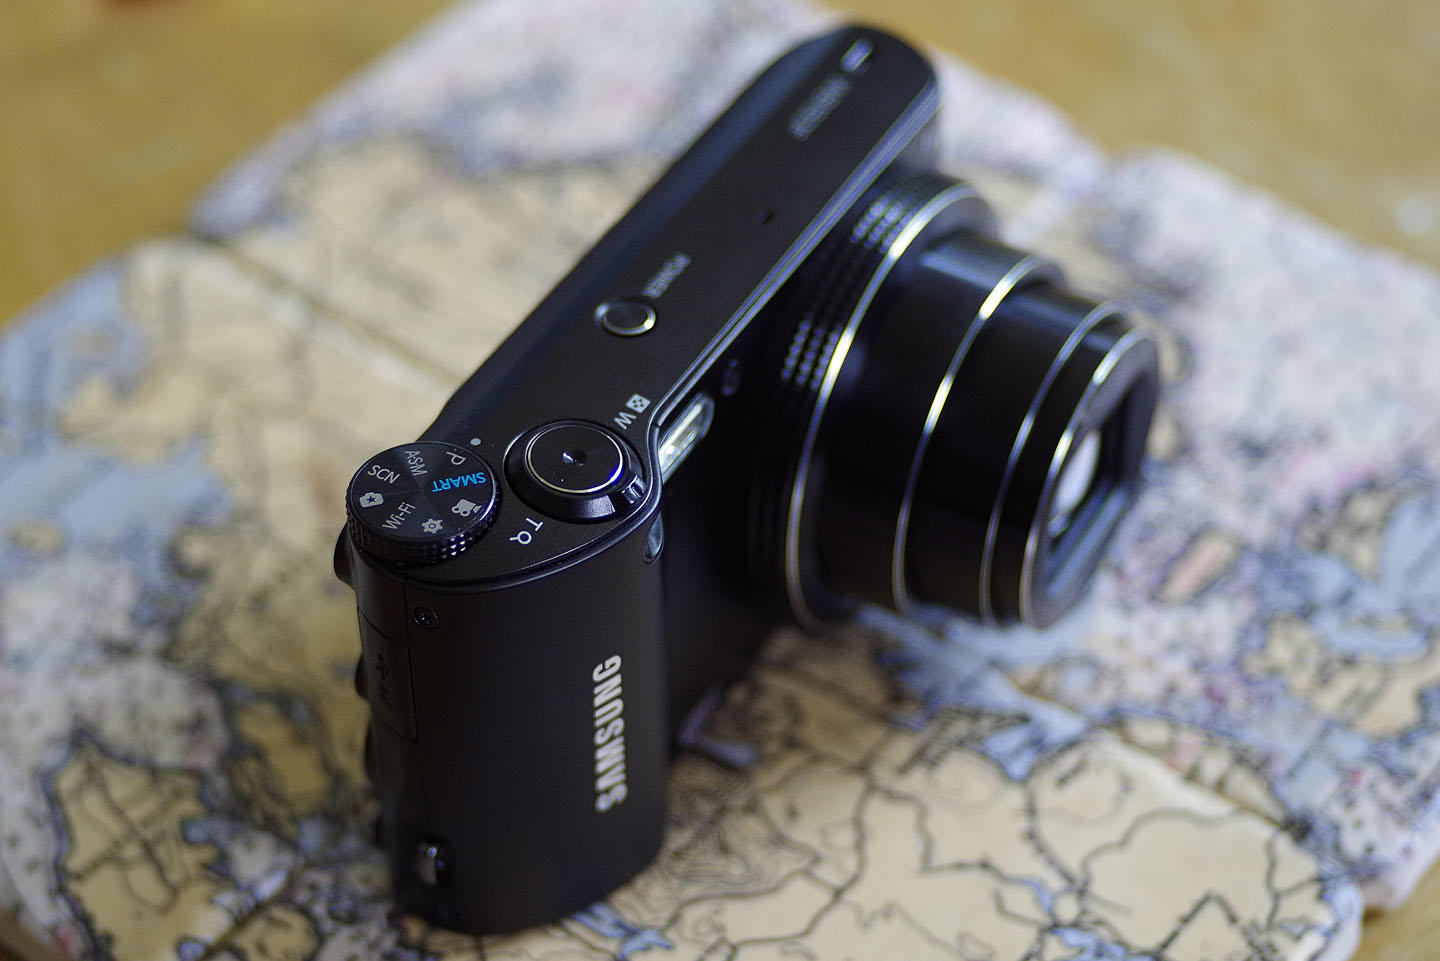 Samsung WB150F review: The Wi-Fi Point-and-Shoot   TechnoBuffalo